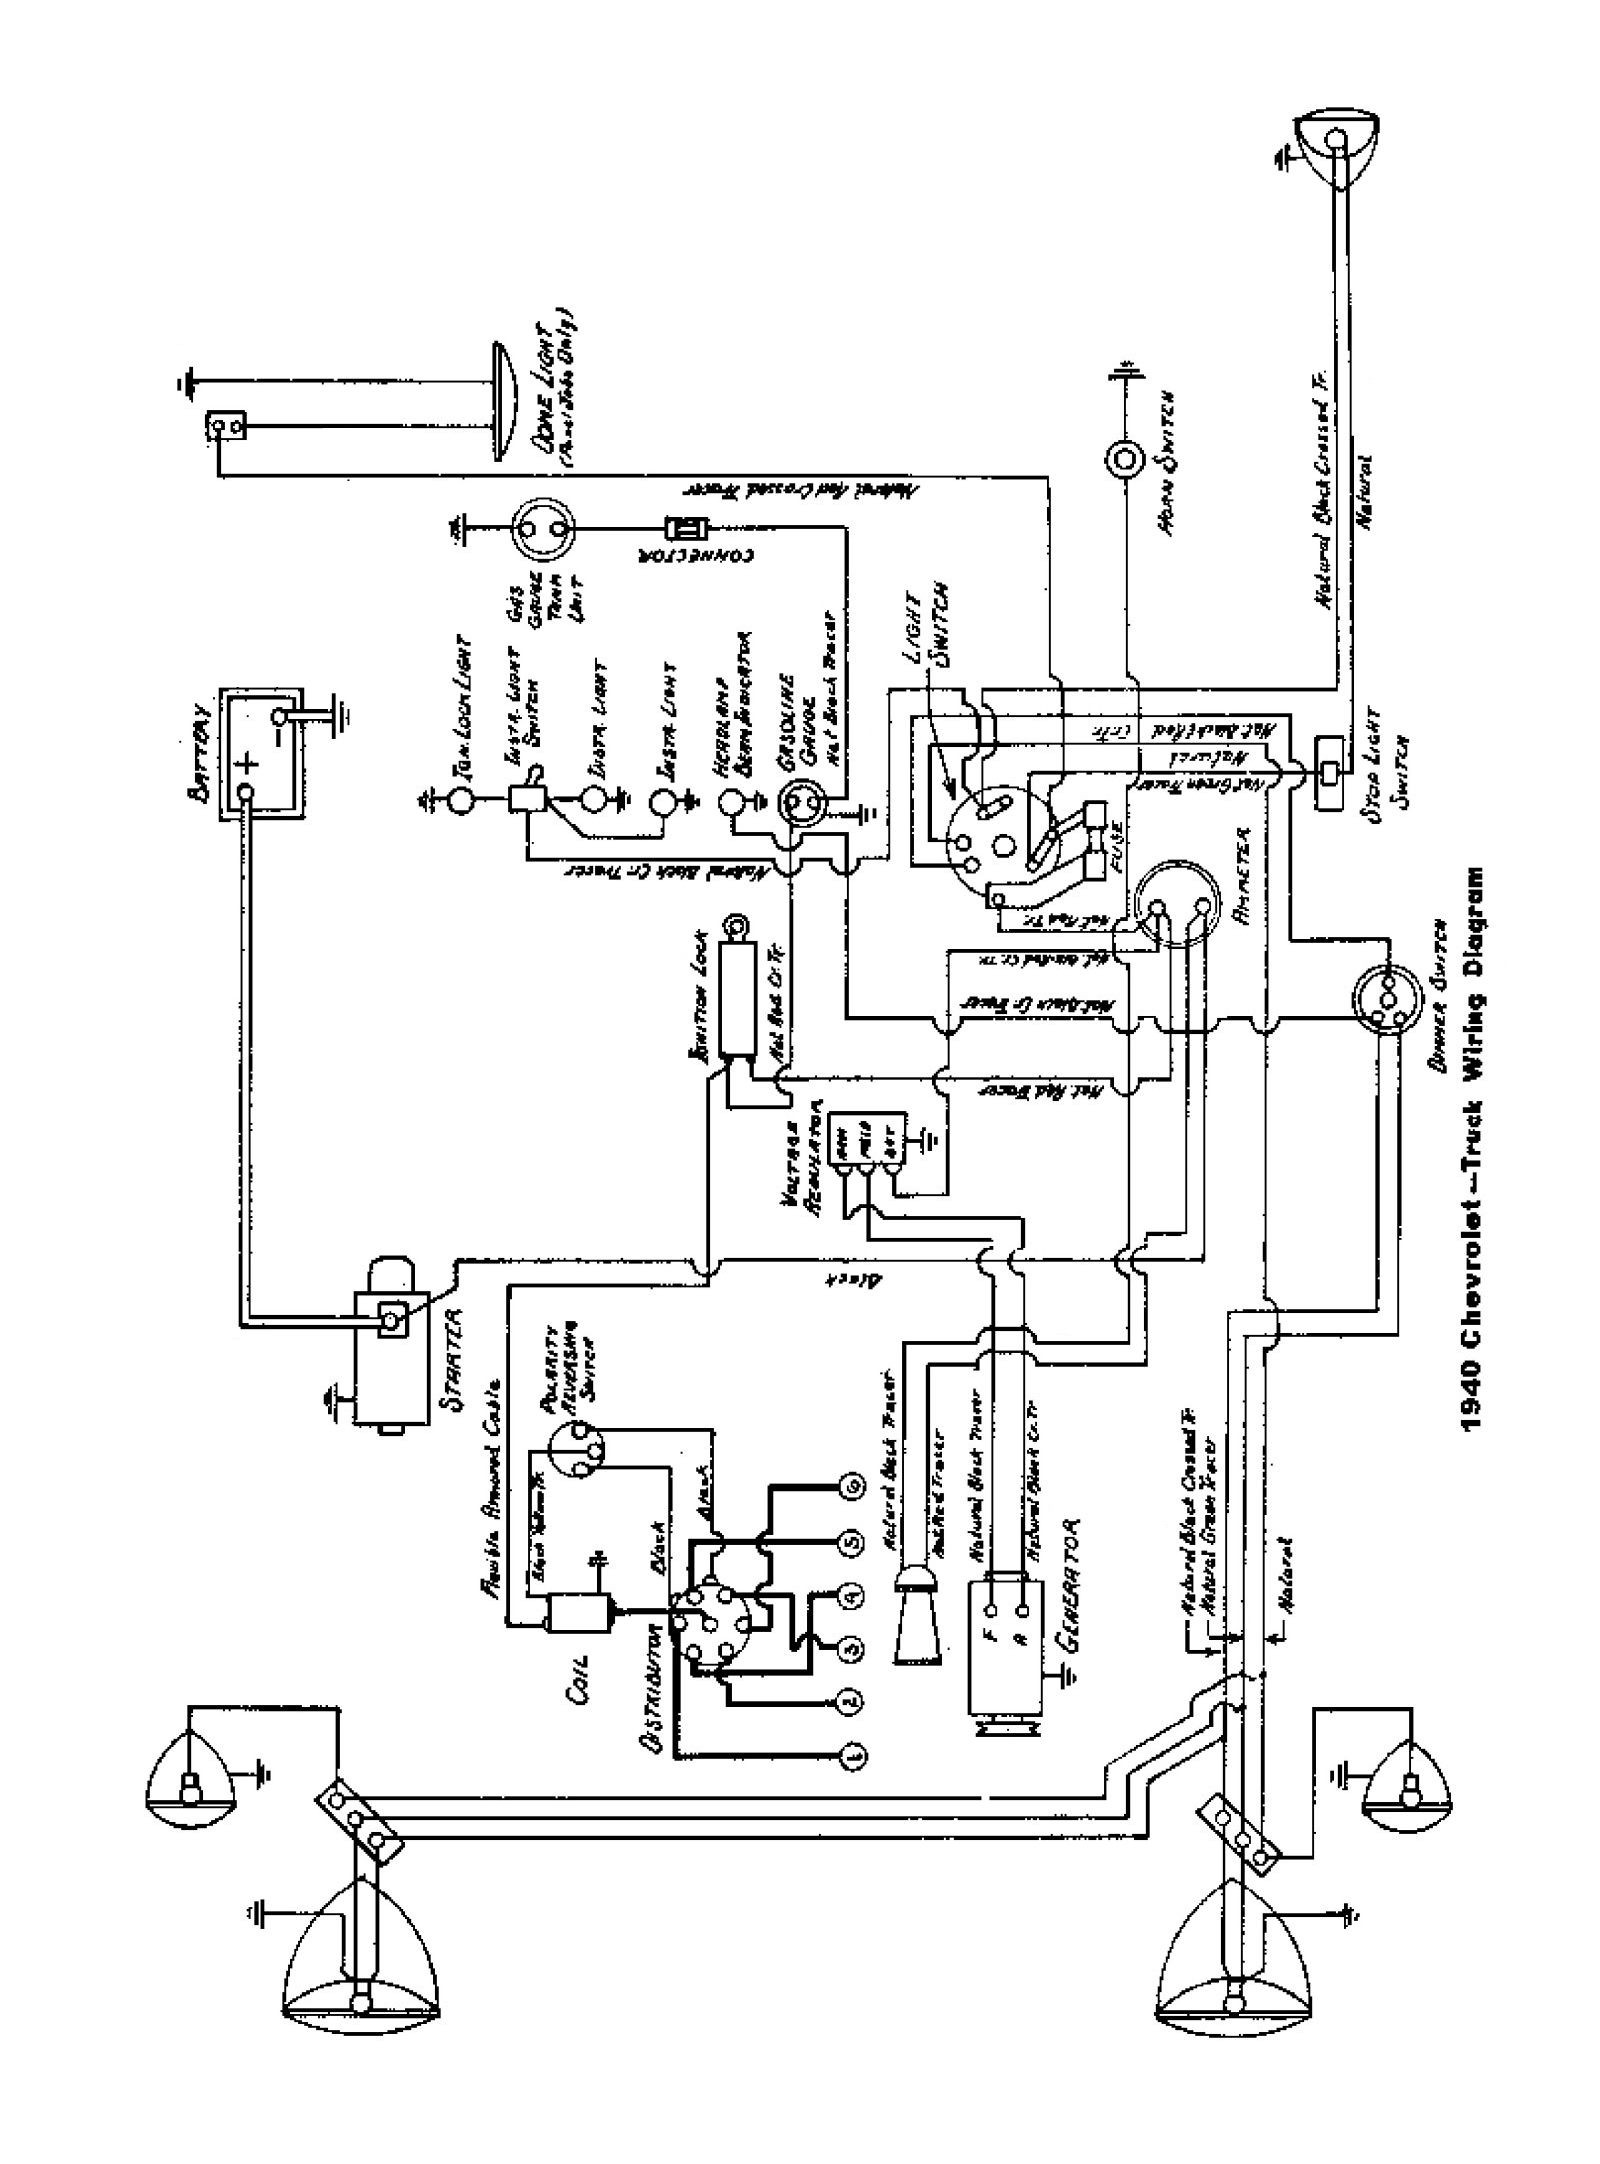 1957 Chevy Starter Wiring Diagram | Wiring Diagram on